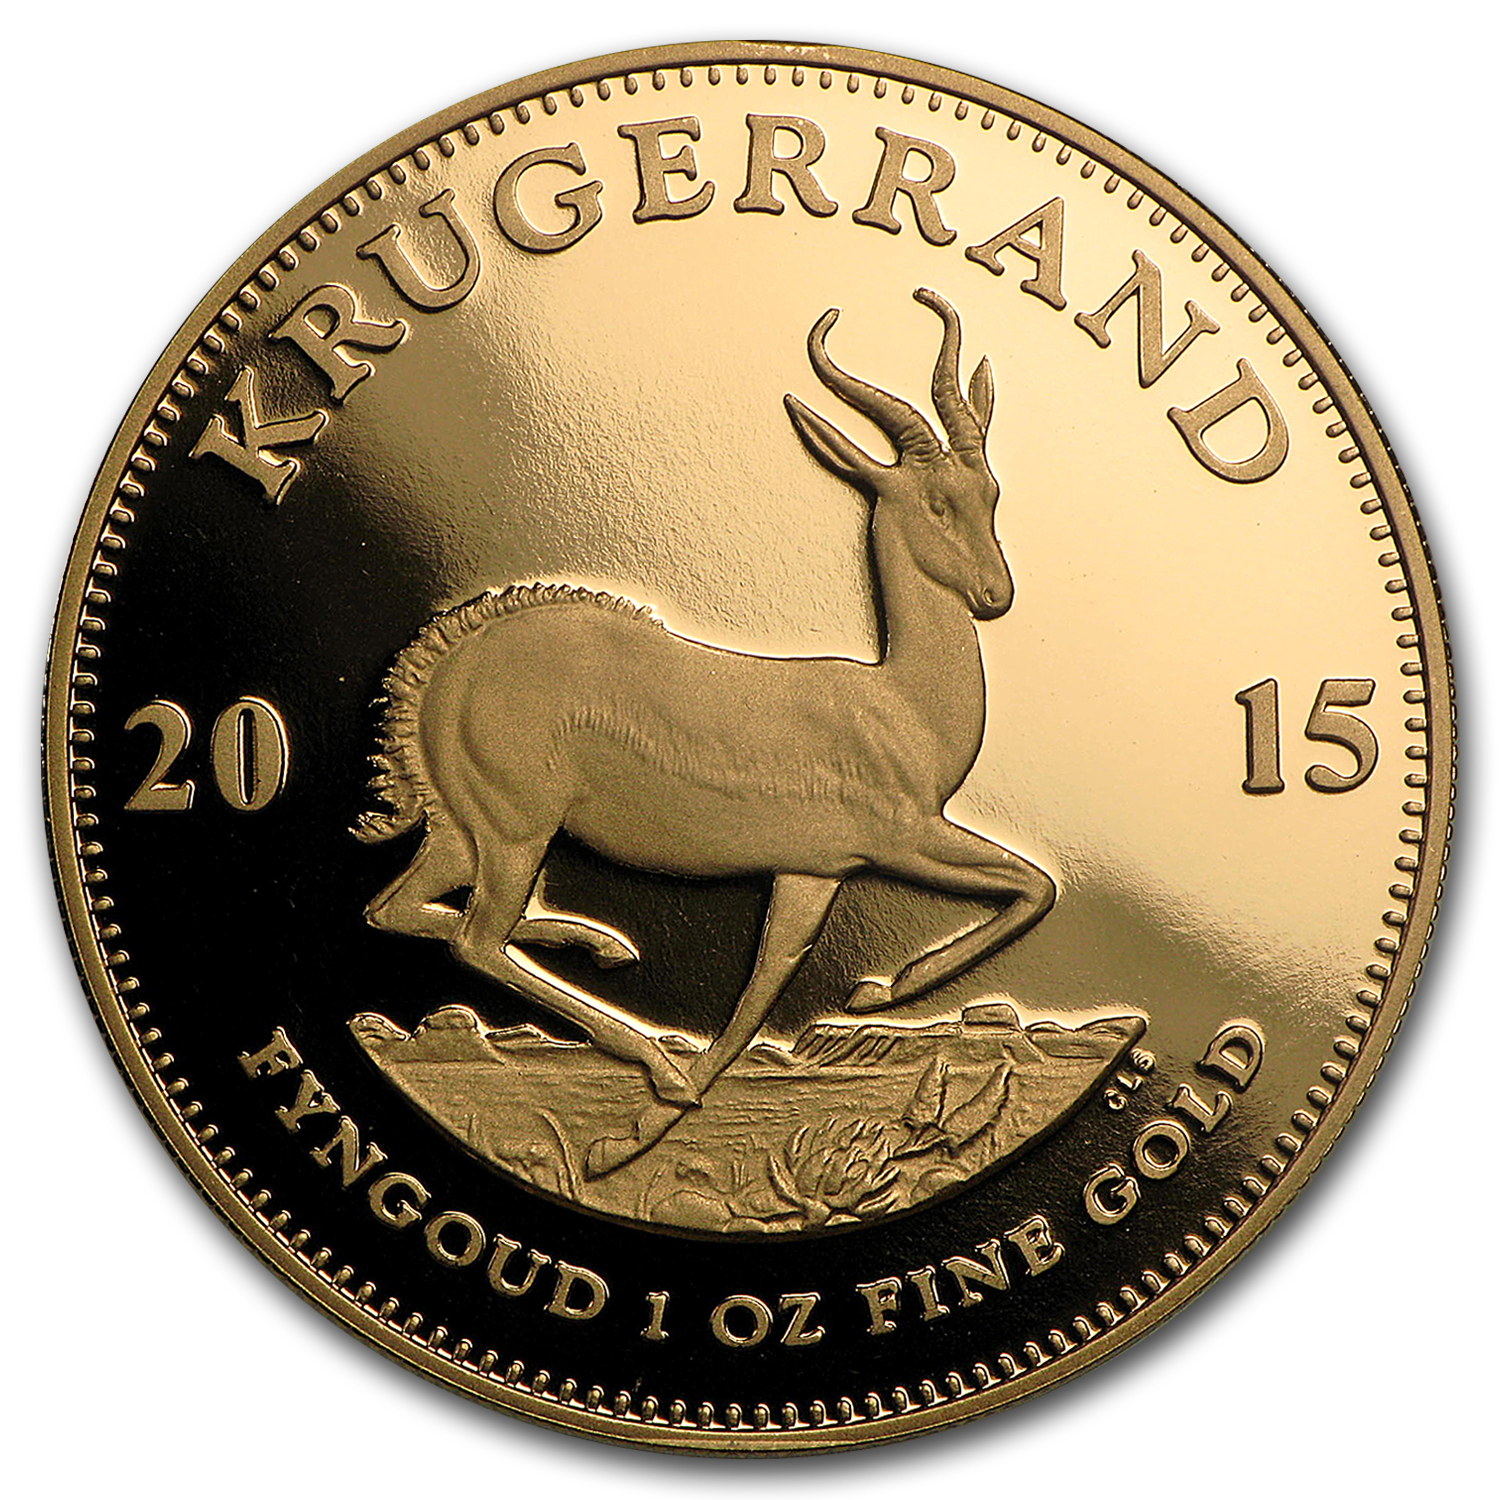 2015 South Africa 1 oz Gold Krugerrand Proof